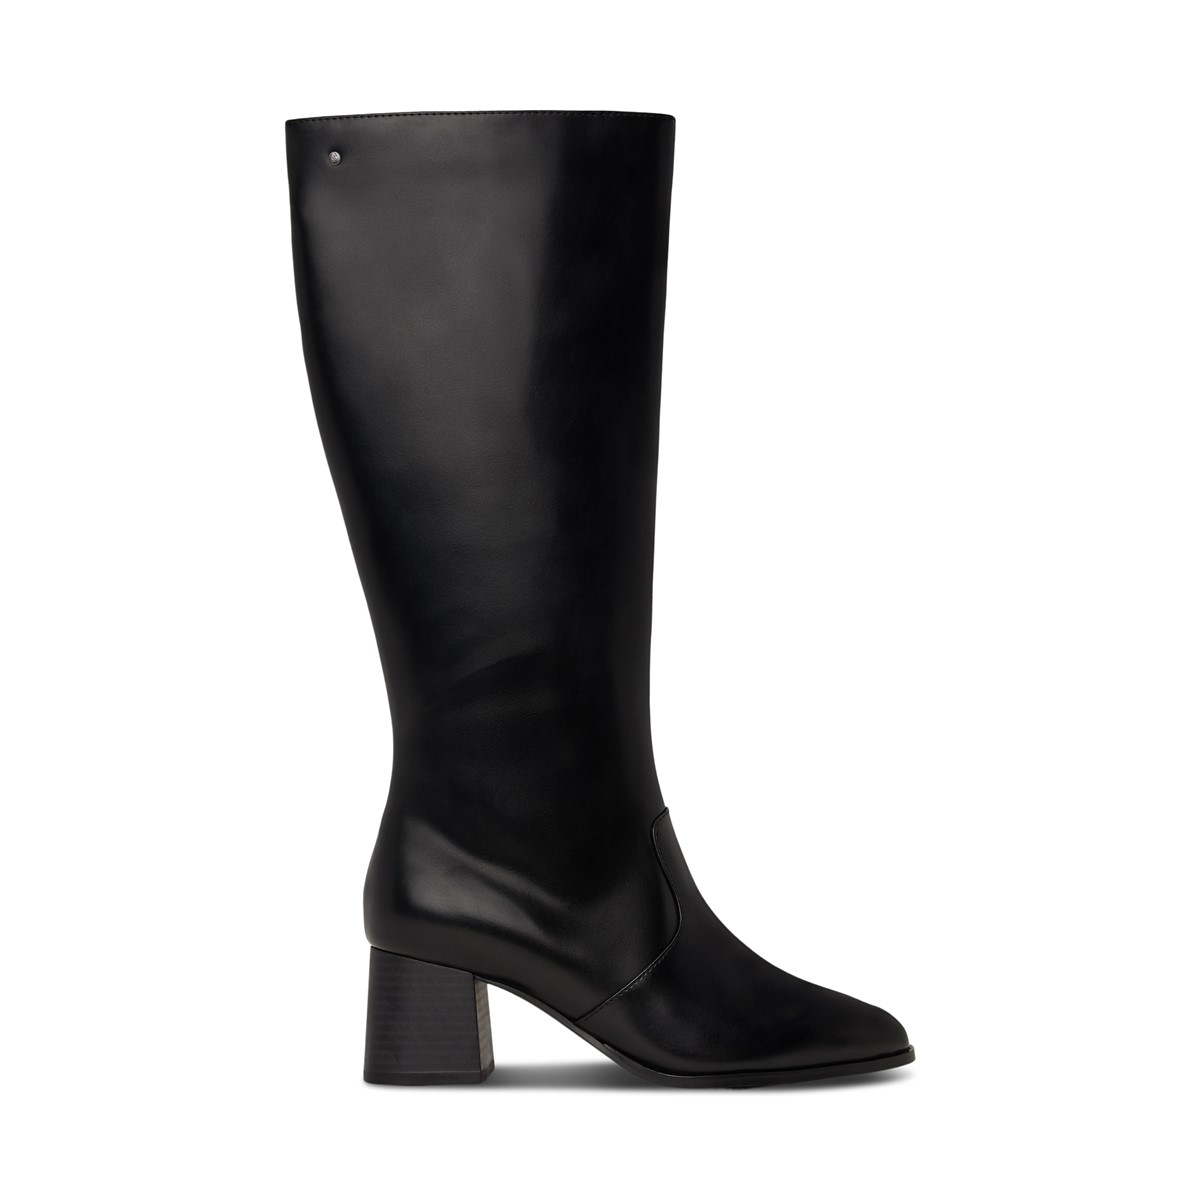 Women's Livia Heeled Tall Boots in Black